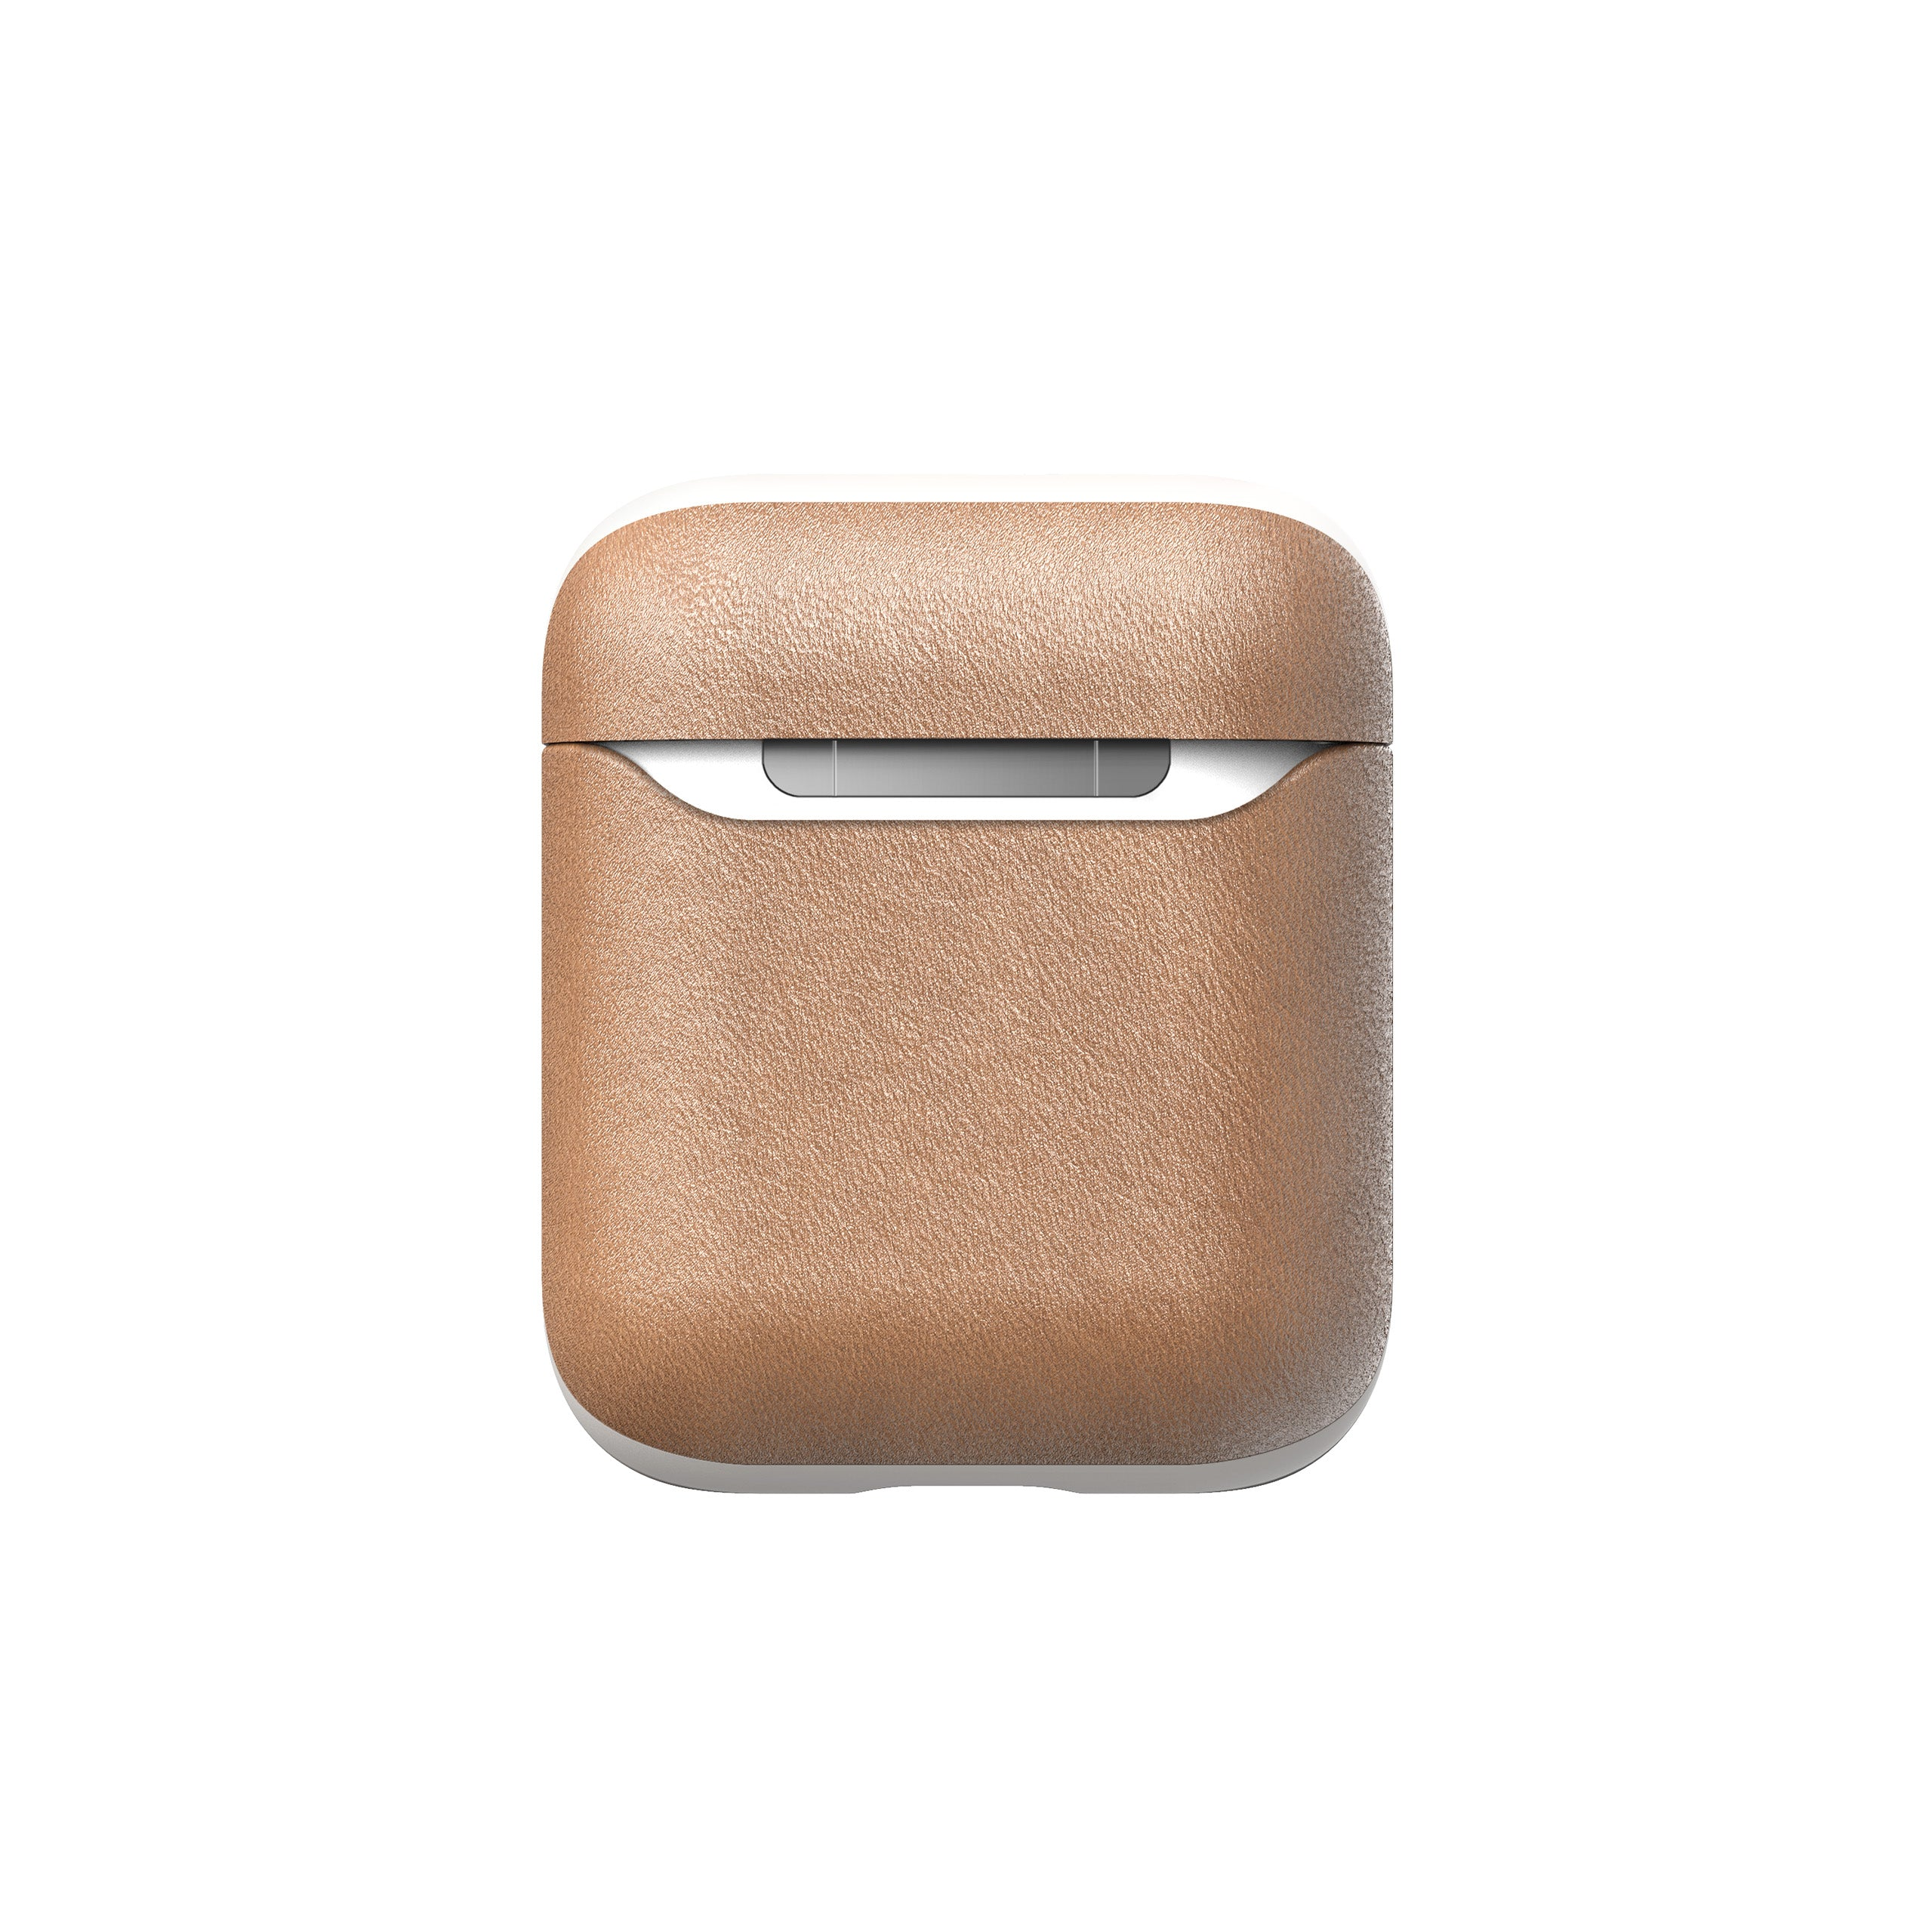 AirPods Case - Natural